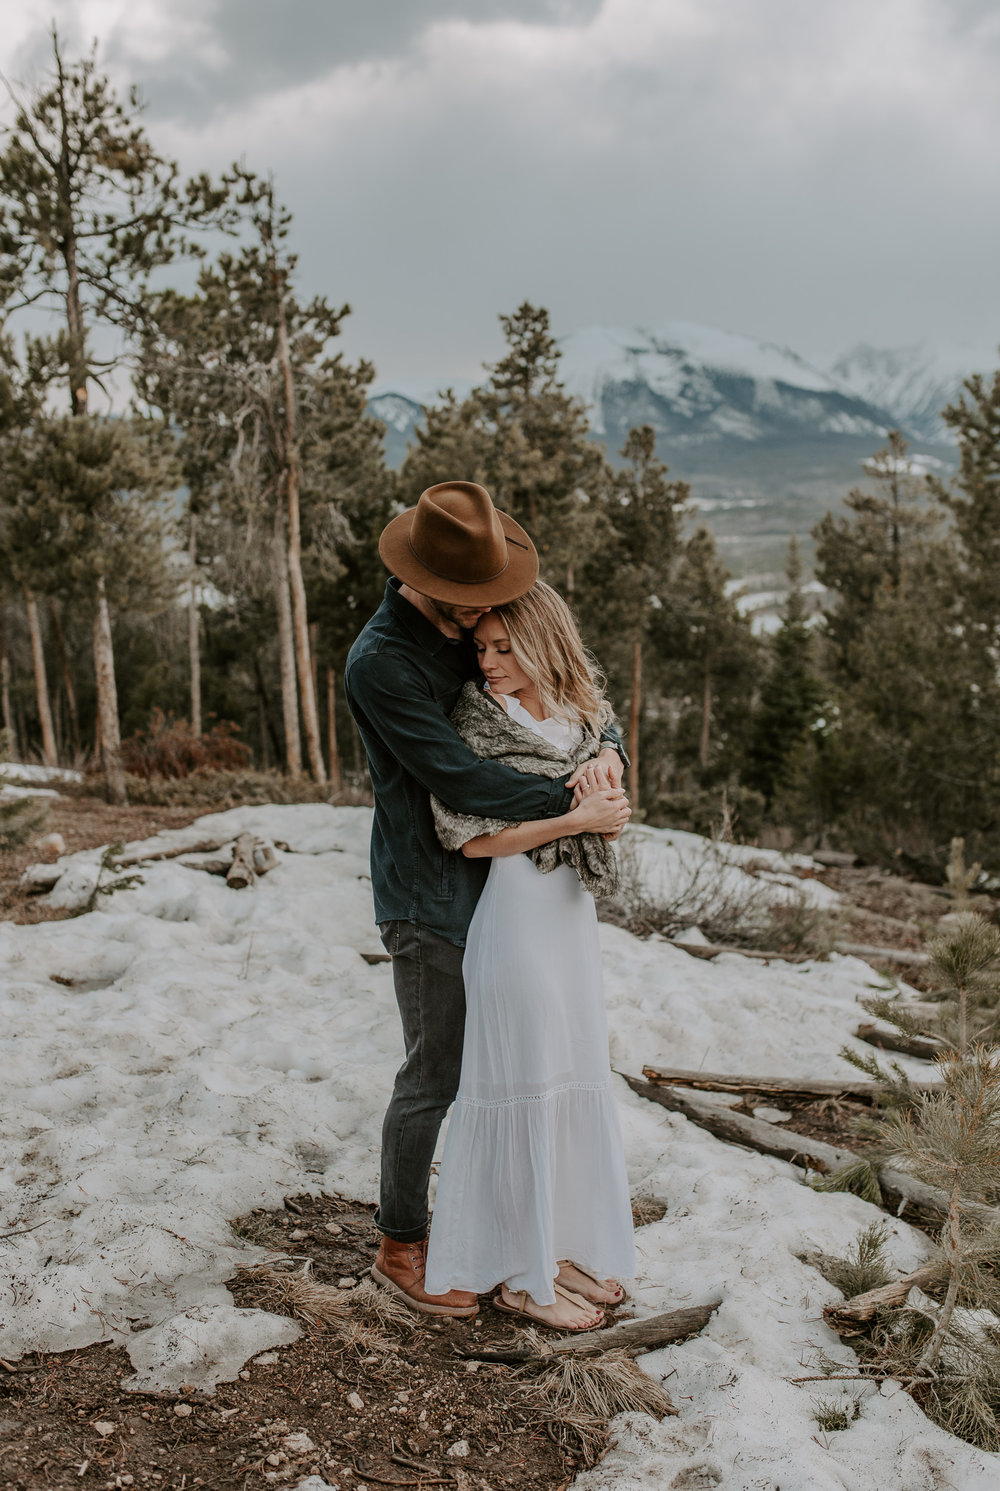 Colorado adventure elopement and wedding photographer. Adventure elopement at Sapphire Point.